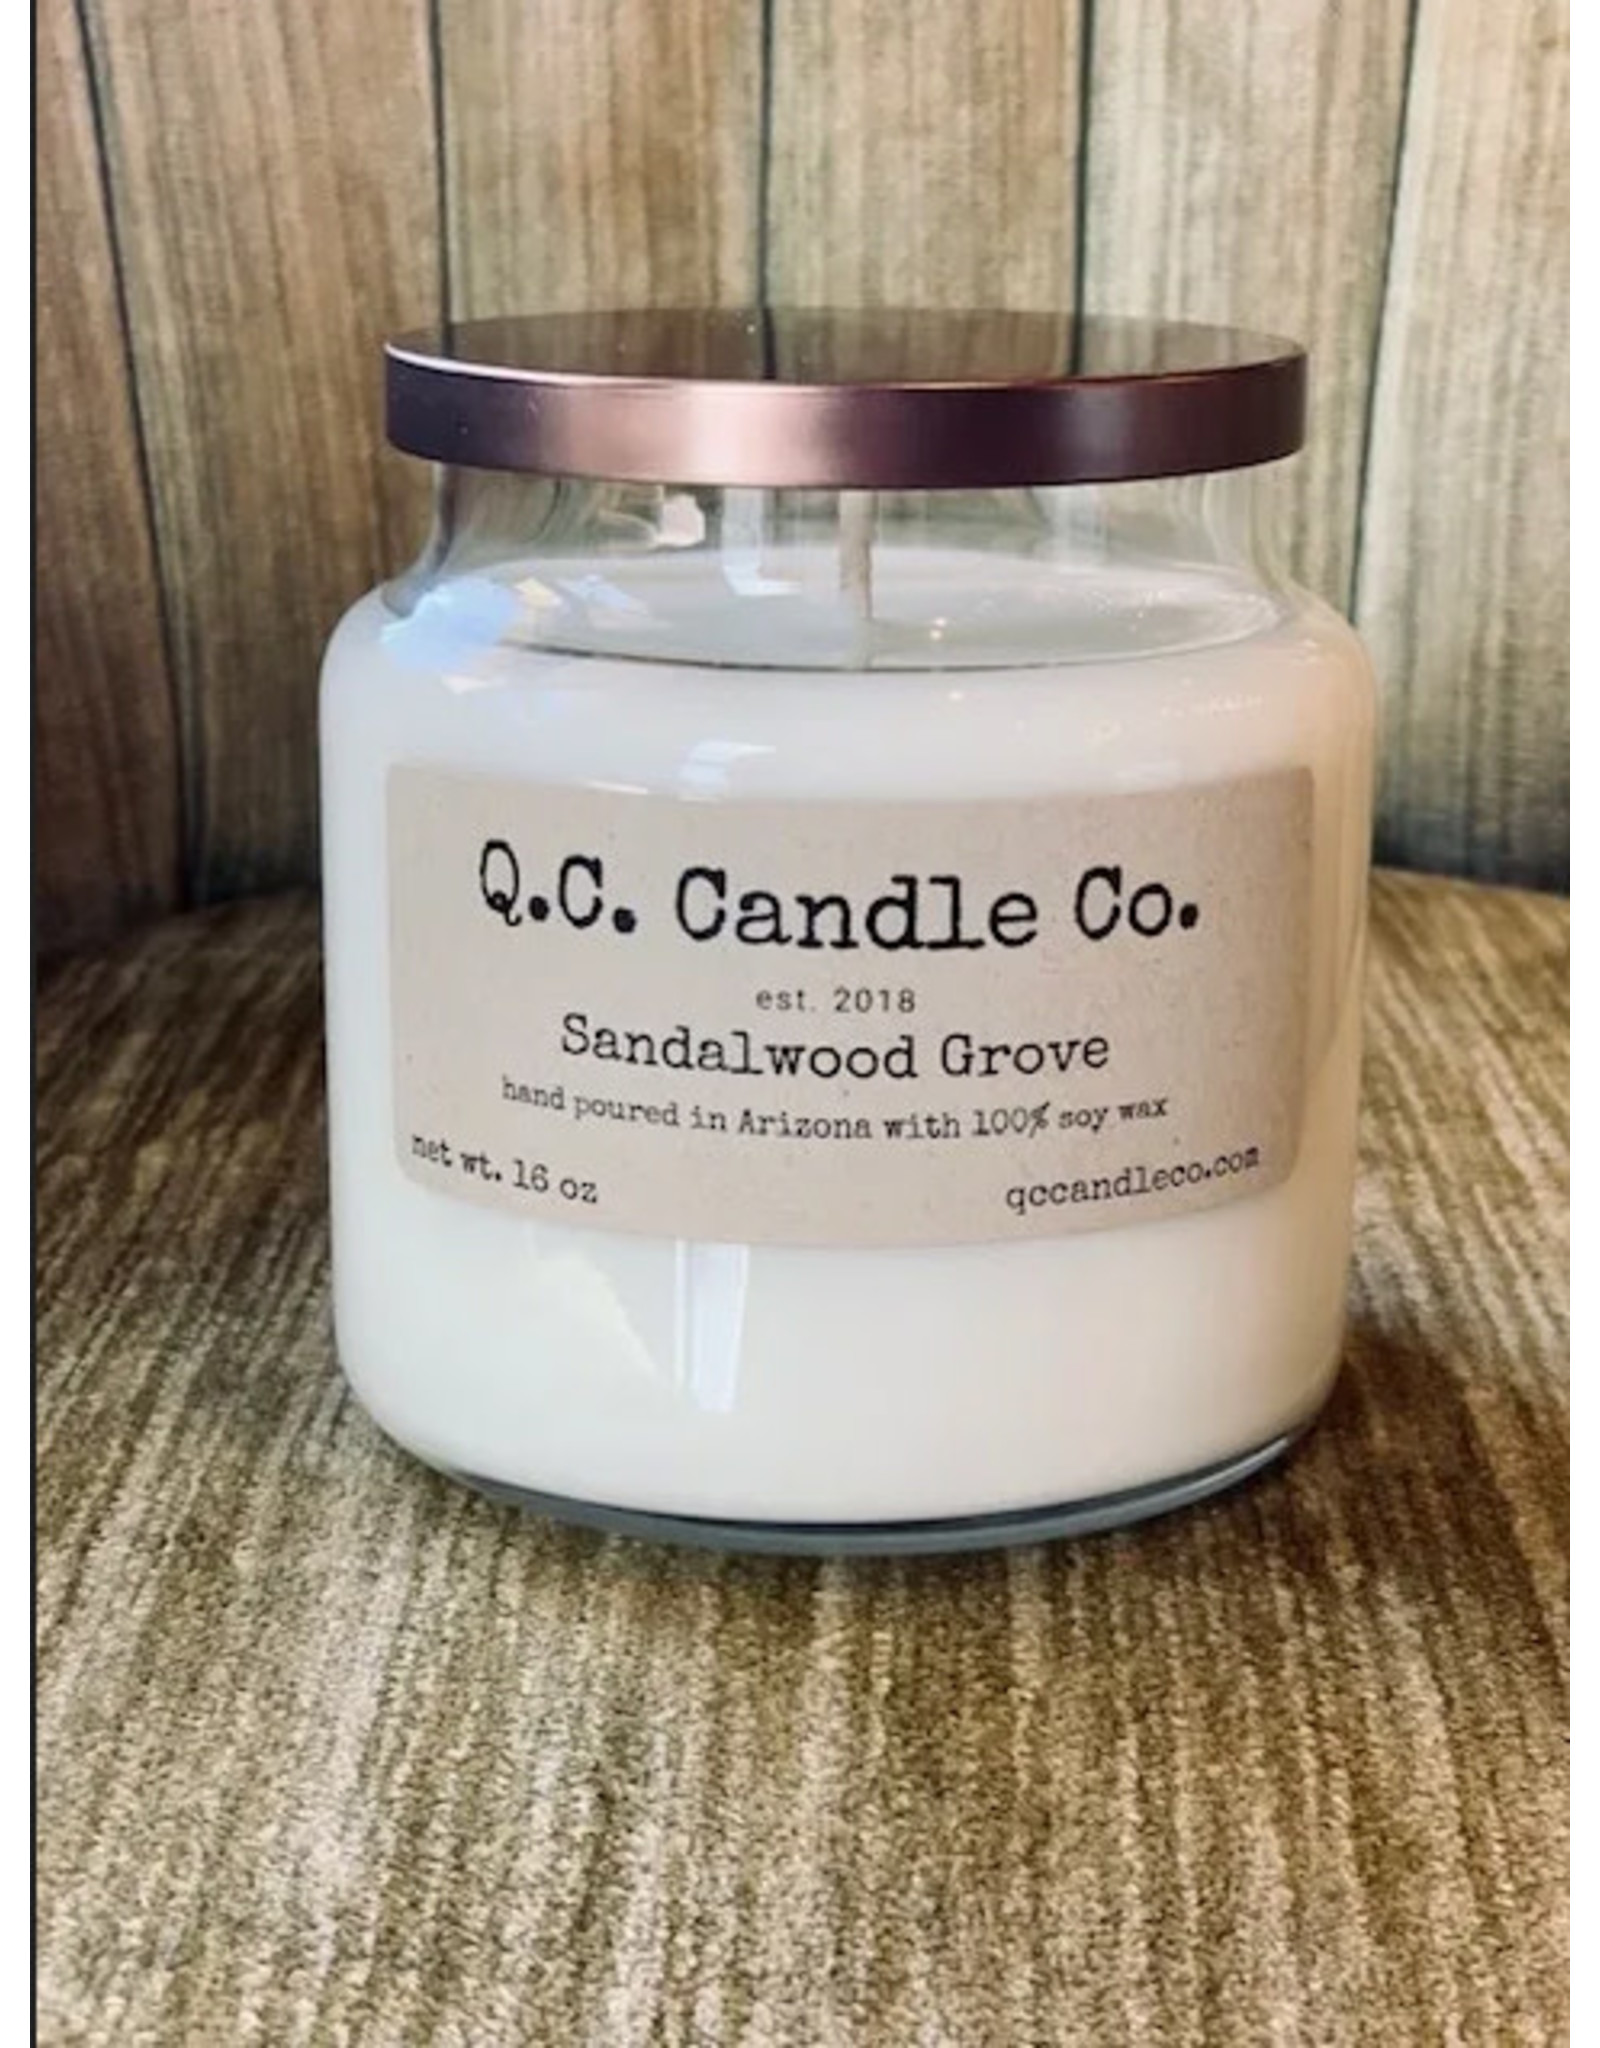 Q. C. Candle Co. Q. C Candle Co.